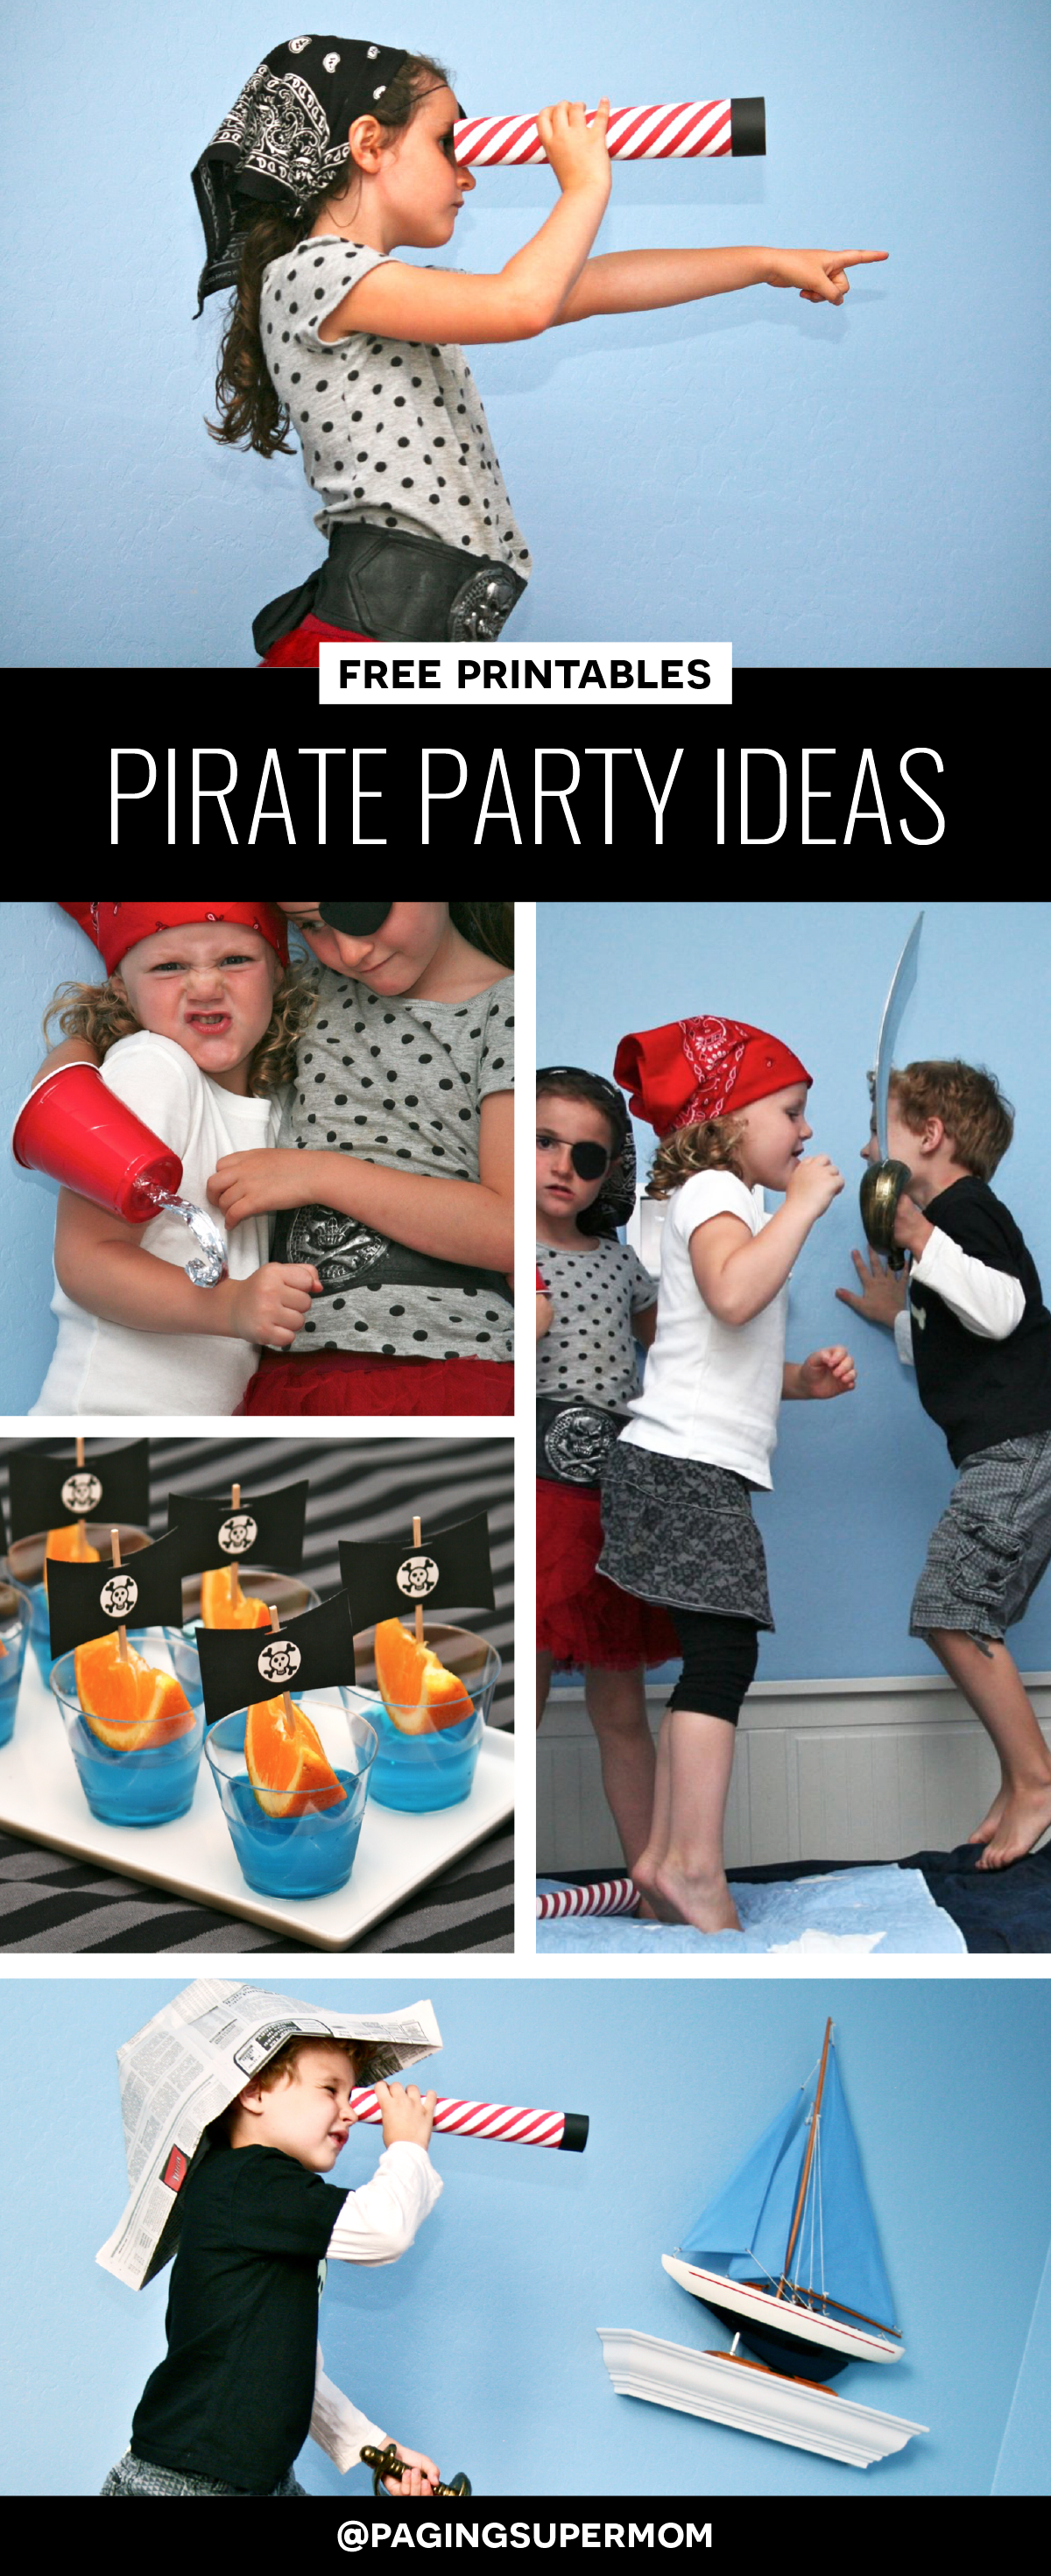 image relating to Pirate Party Printable referred to as Pirate Get together Tips - Absolutely free Decor, Food items and Enjoyable Pirate Craft